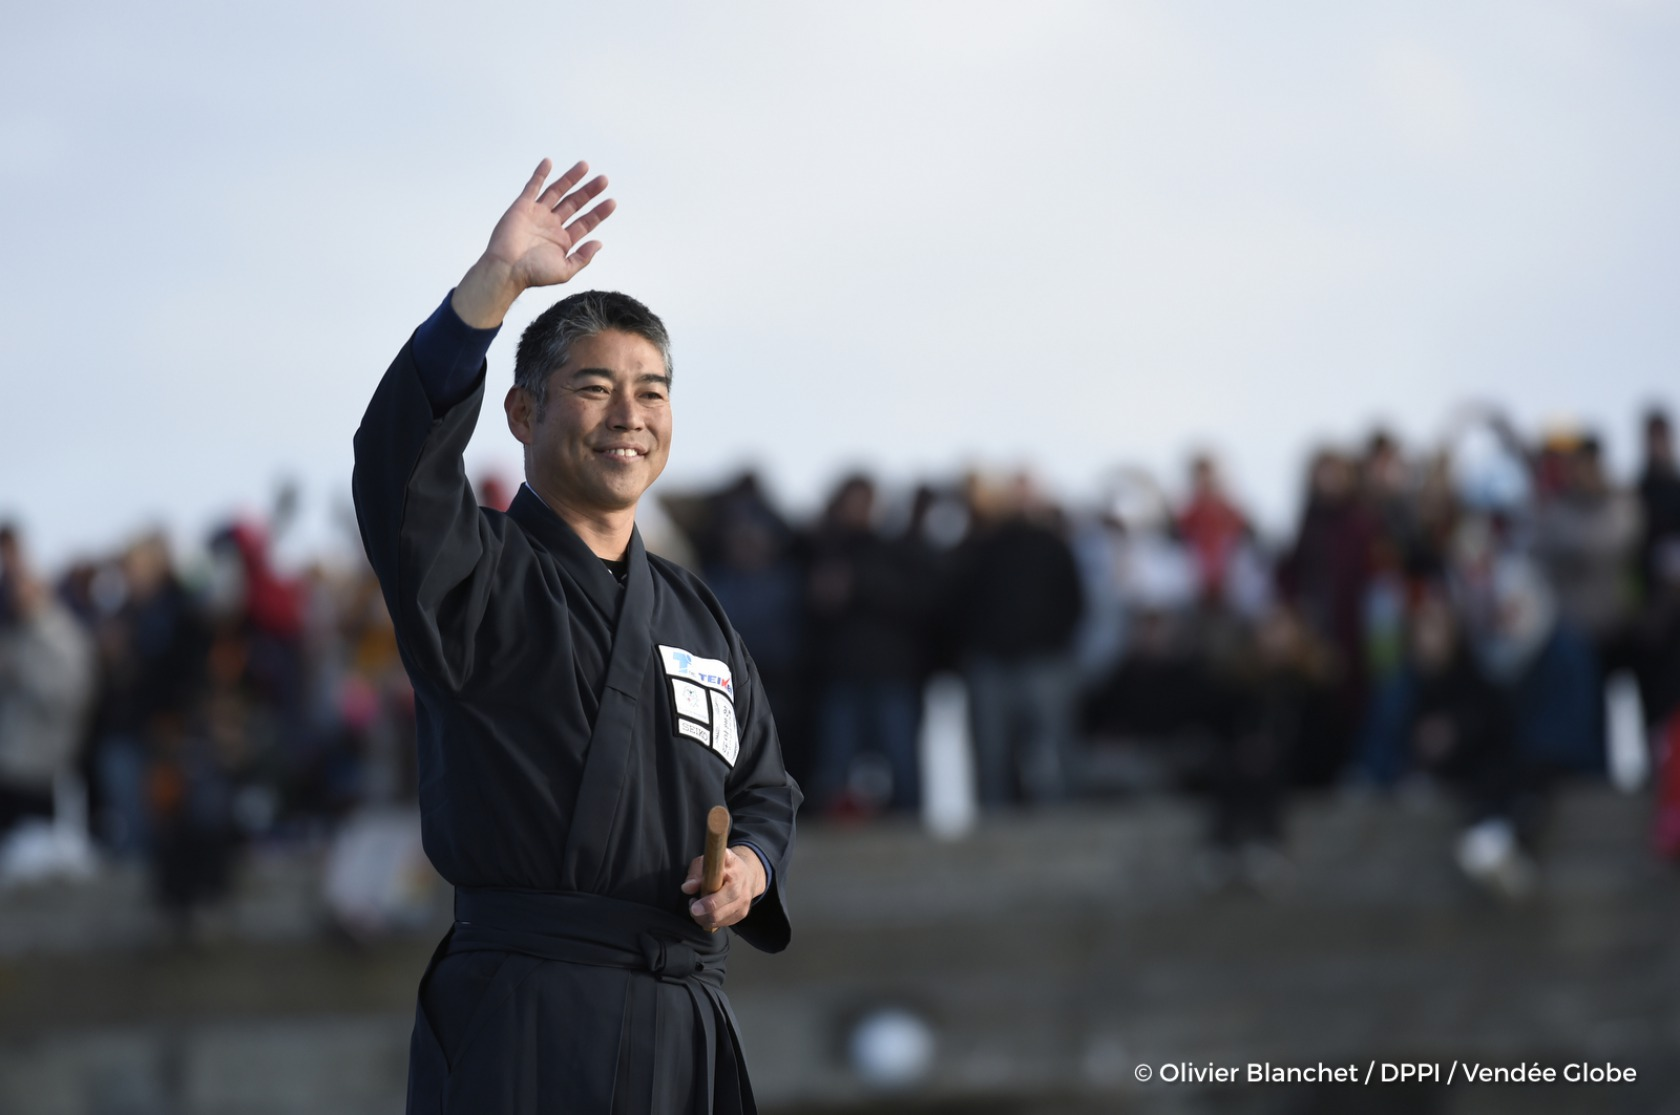 Channel ambiance with Kojiro Shiraishi (JAP), skipper Spirit of Yukoh, start of the Vendee Globe, in Les Sables d'Olonne, France, on November 6th, 2016 - Photo Olivier Blanchet / DPPI / Vendee Globe